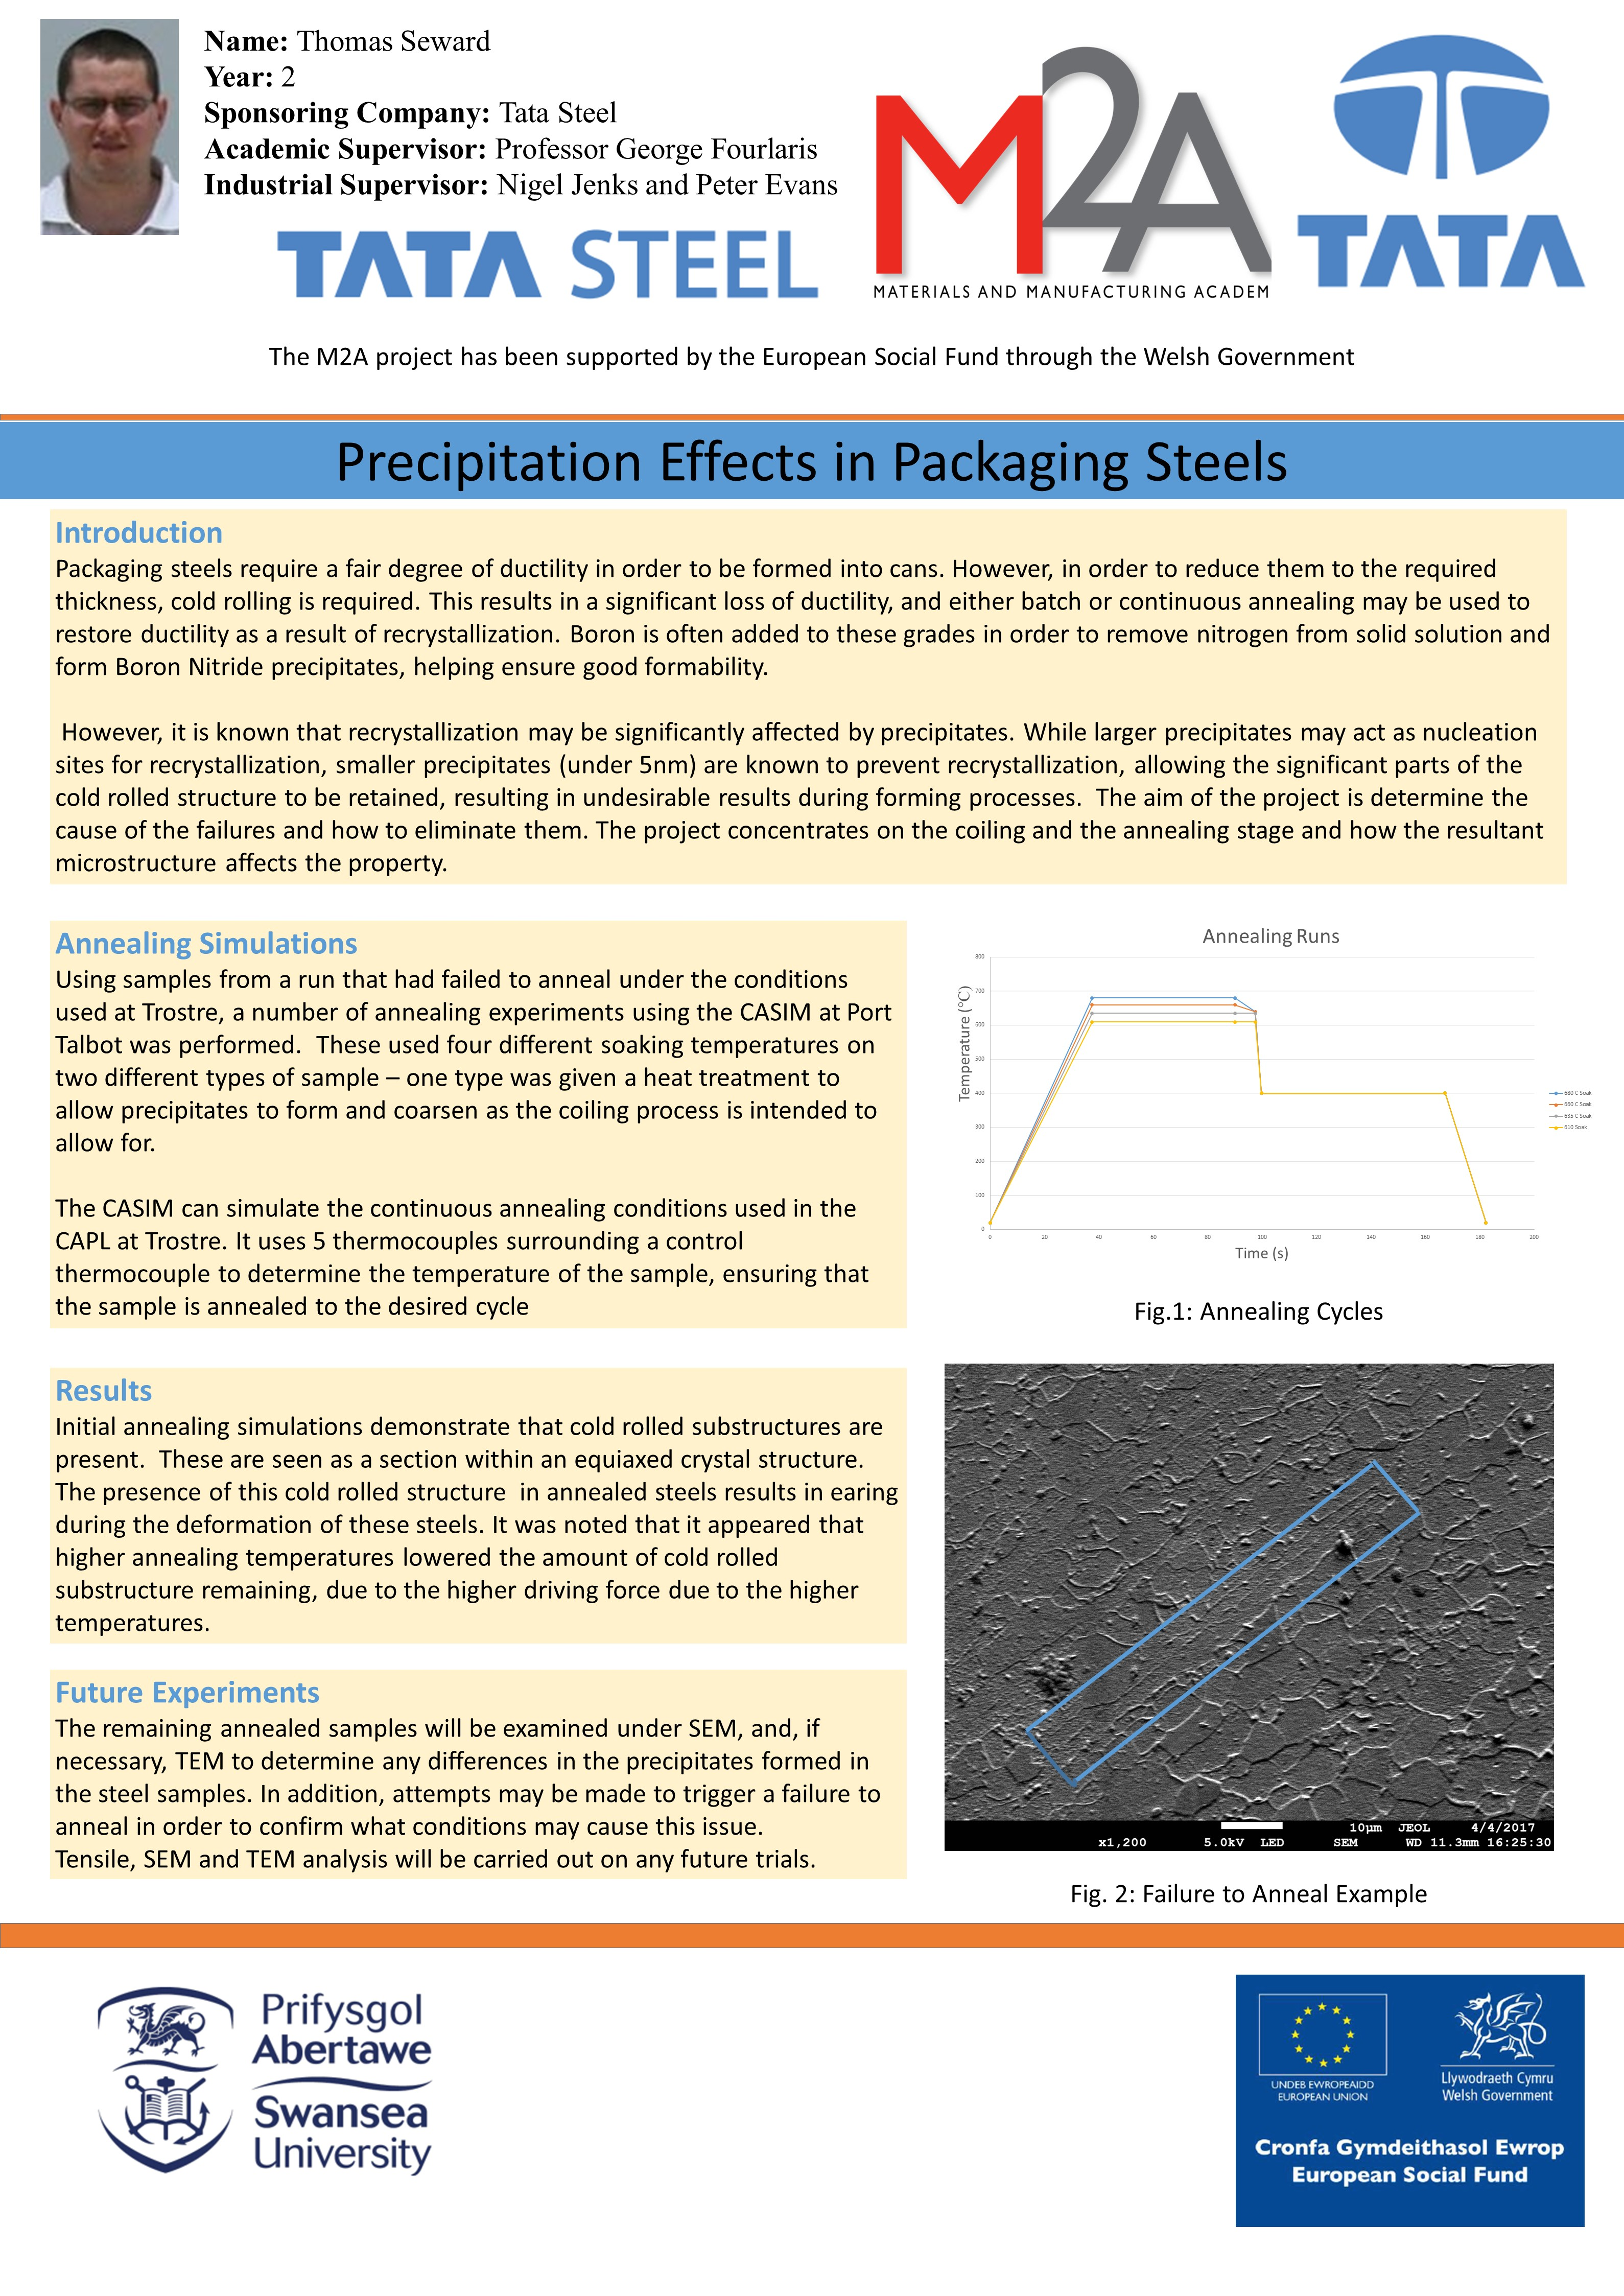 Precipitation Effects in Packaging Steels